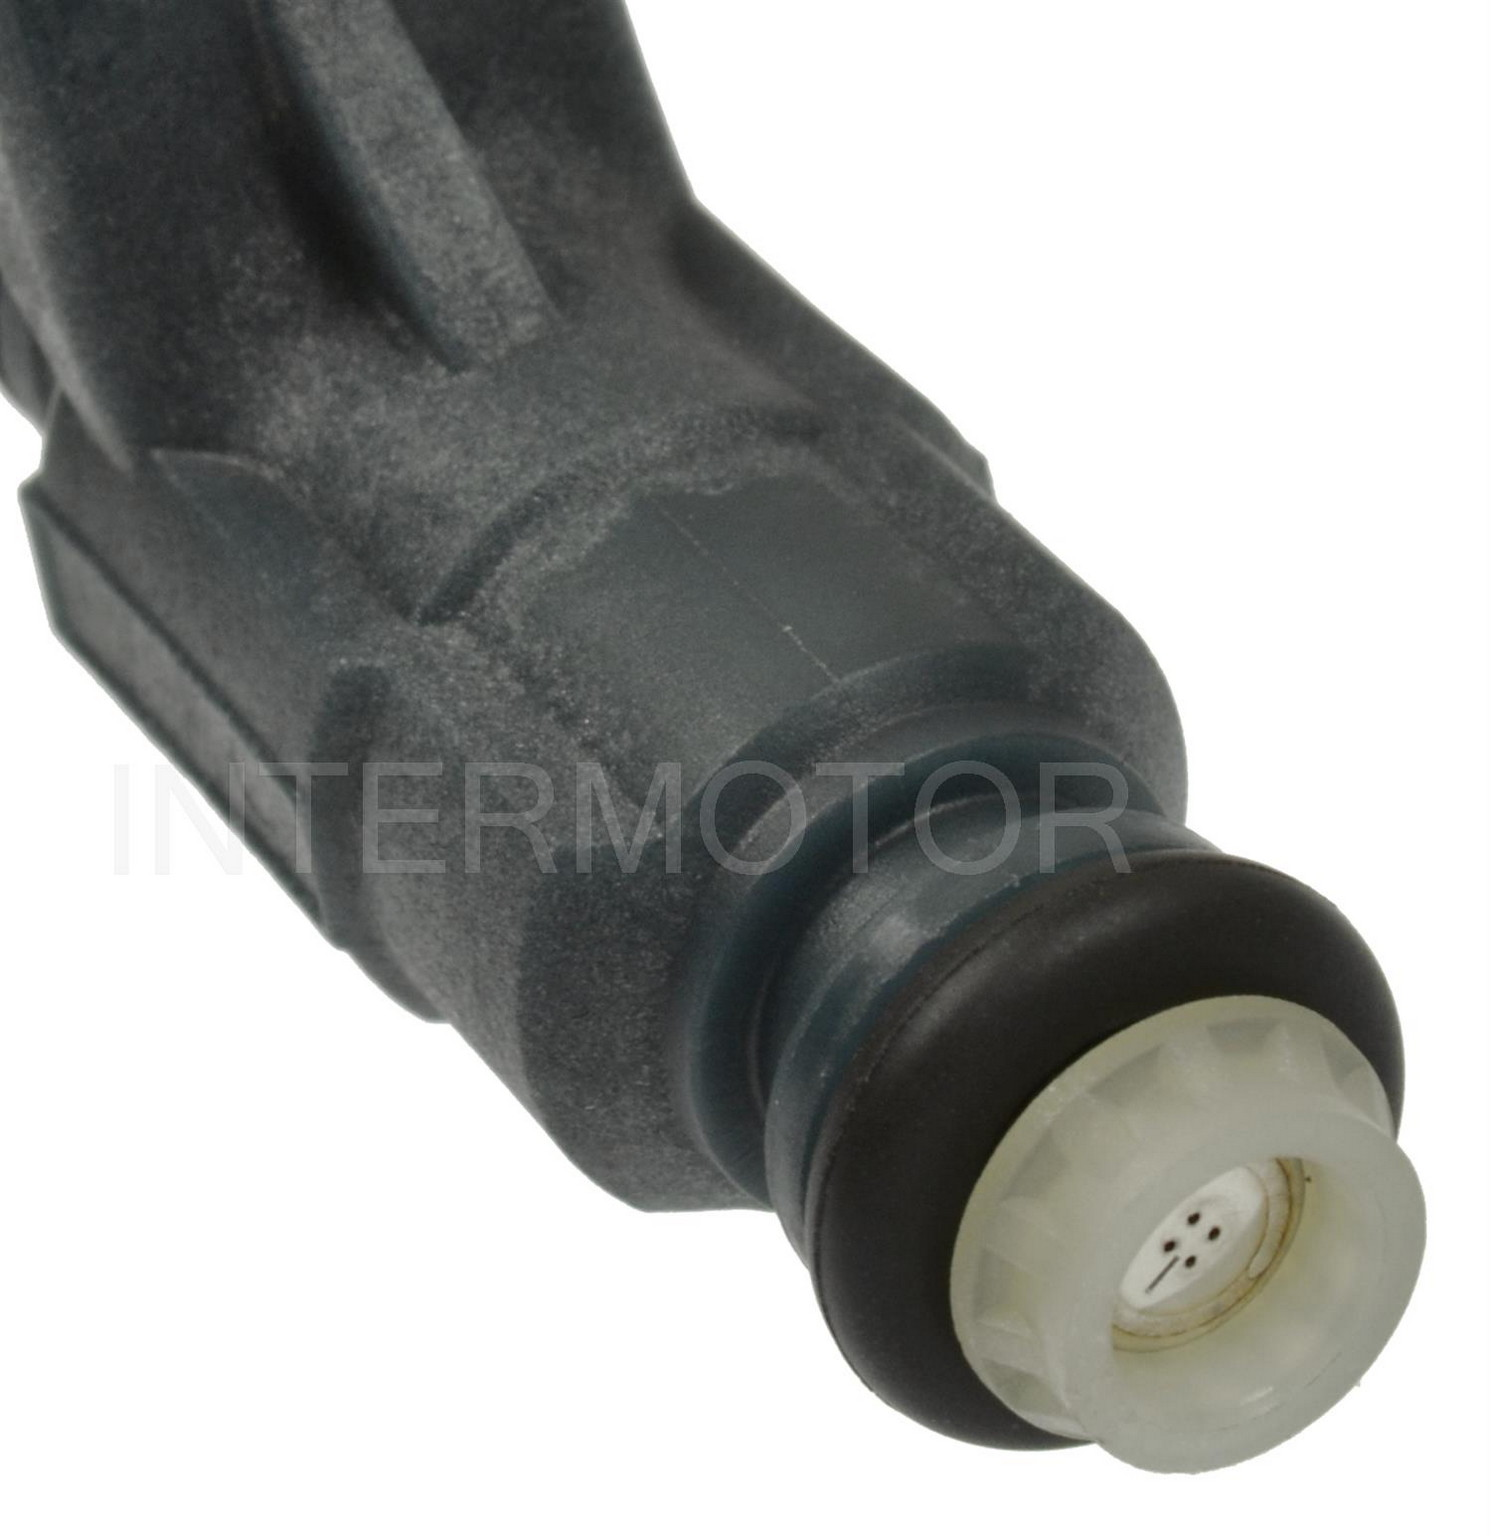 2002 Mercedes Benz Ml320 Fuel Injector Filter Si Fj603